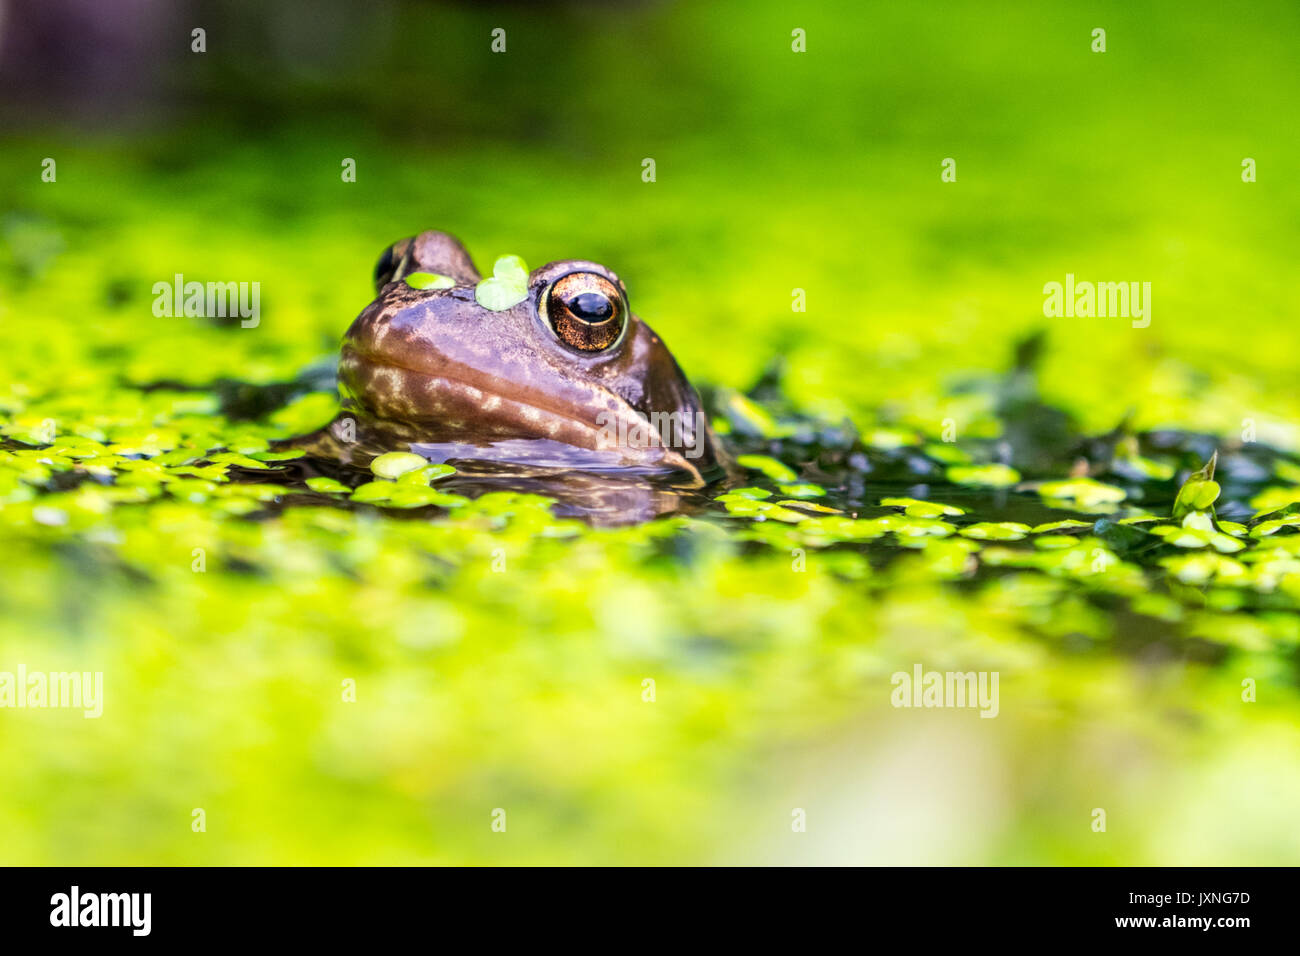 Common Frogs in a British garden pond - Stock Image